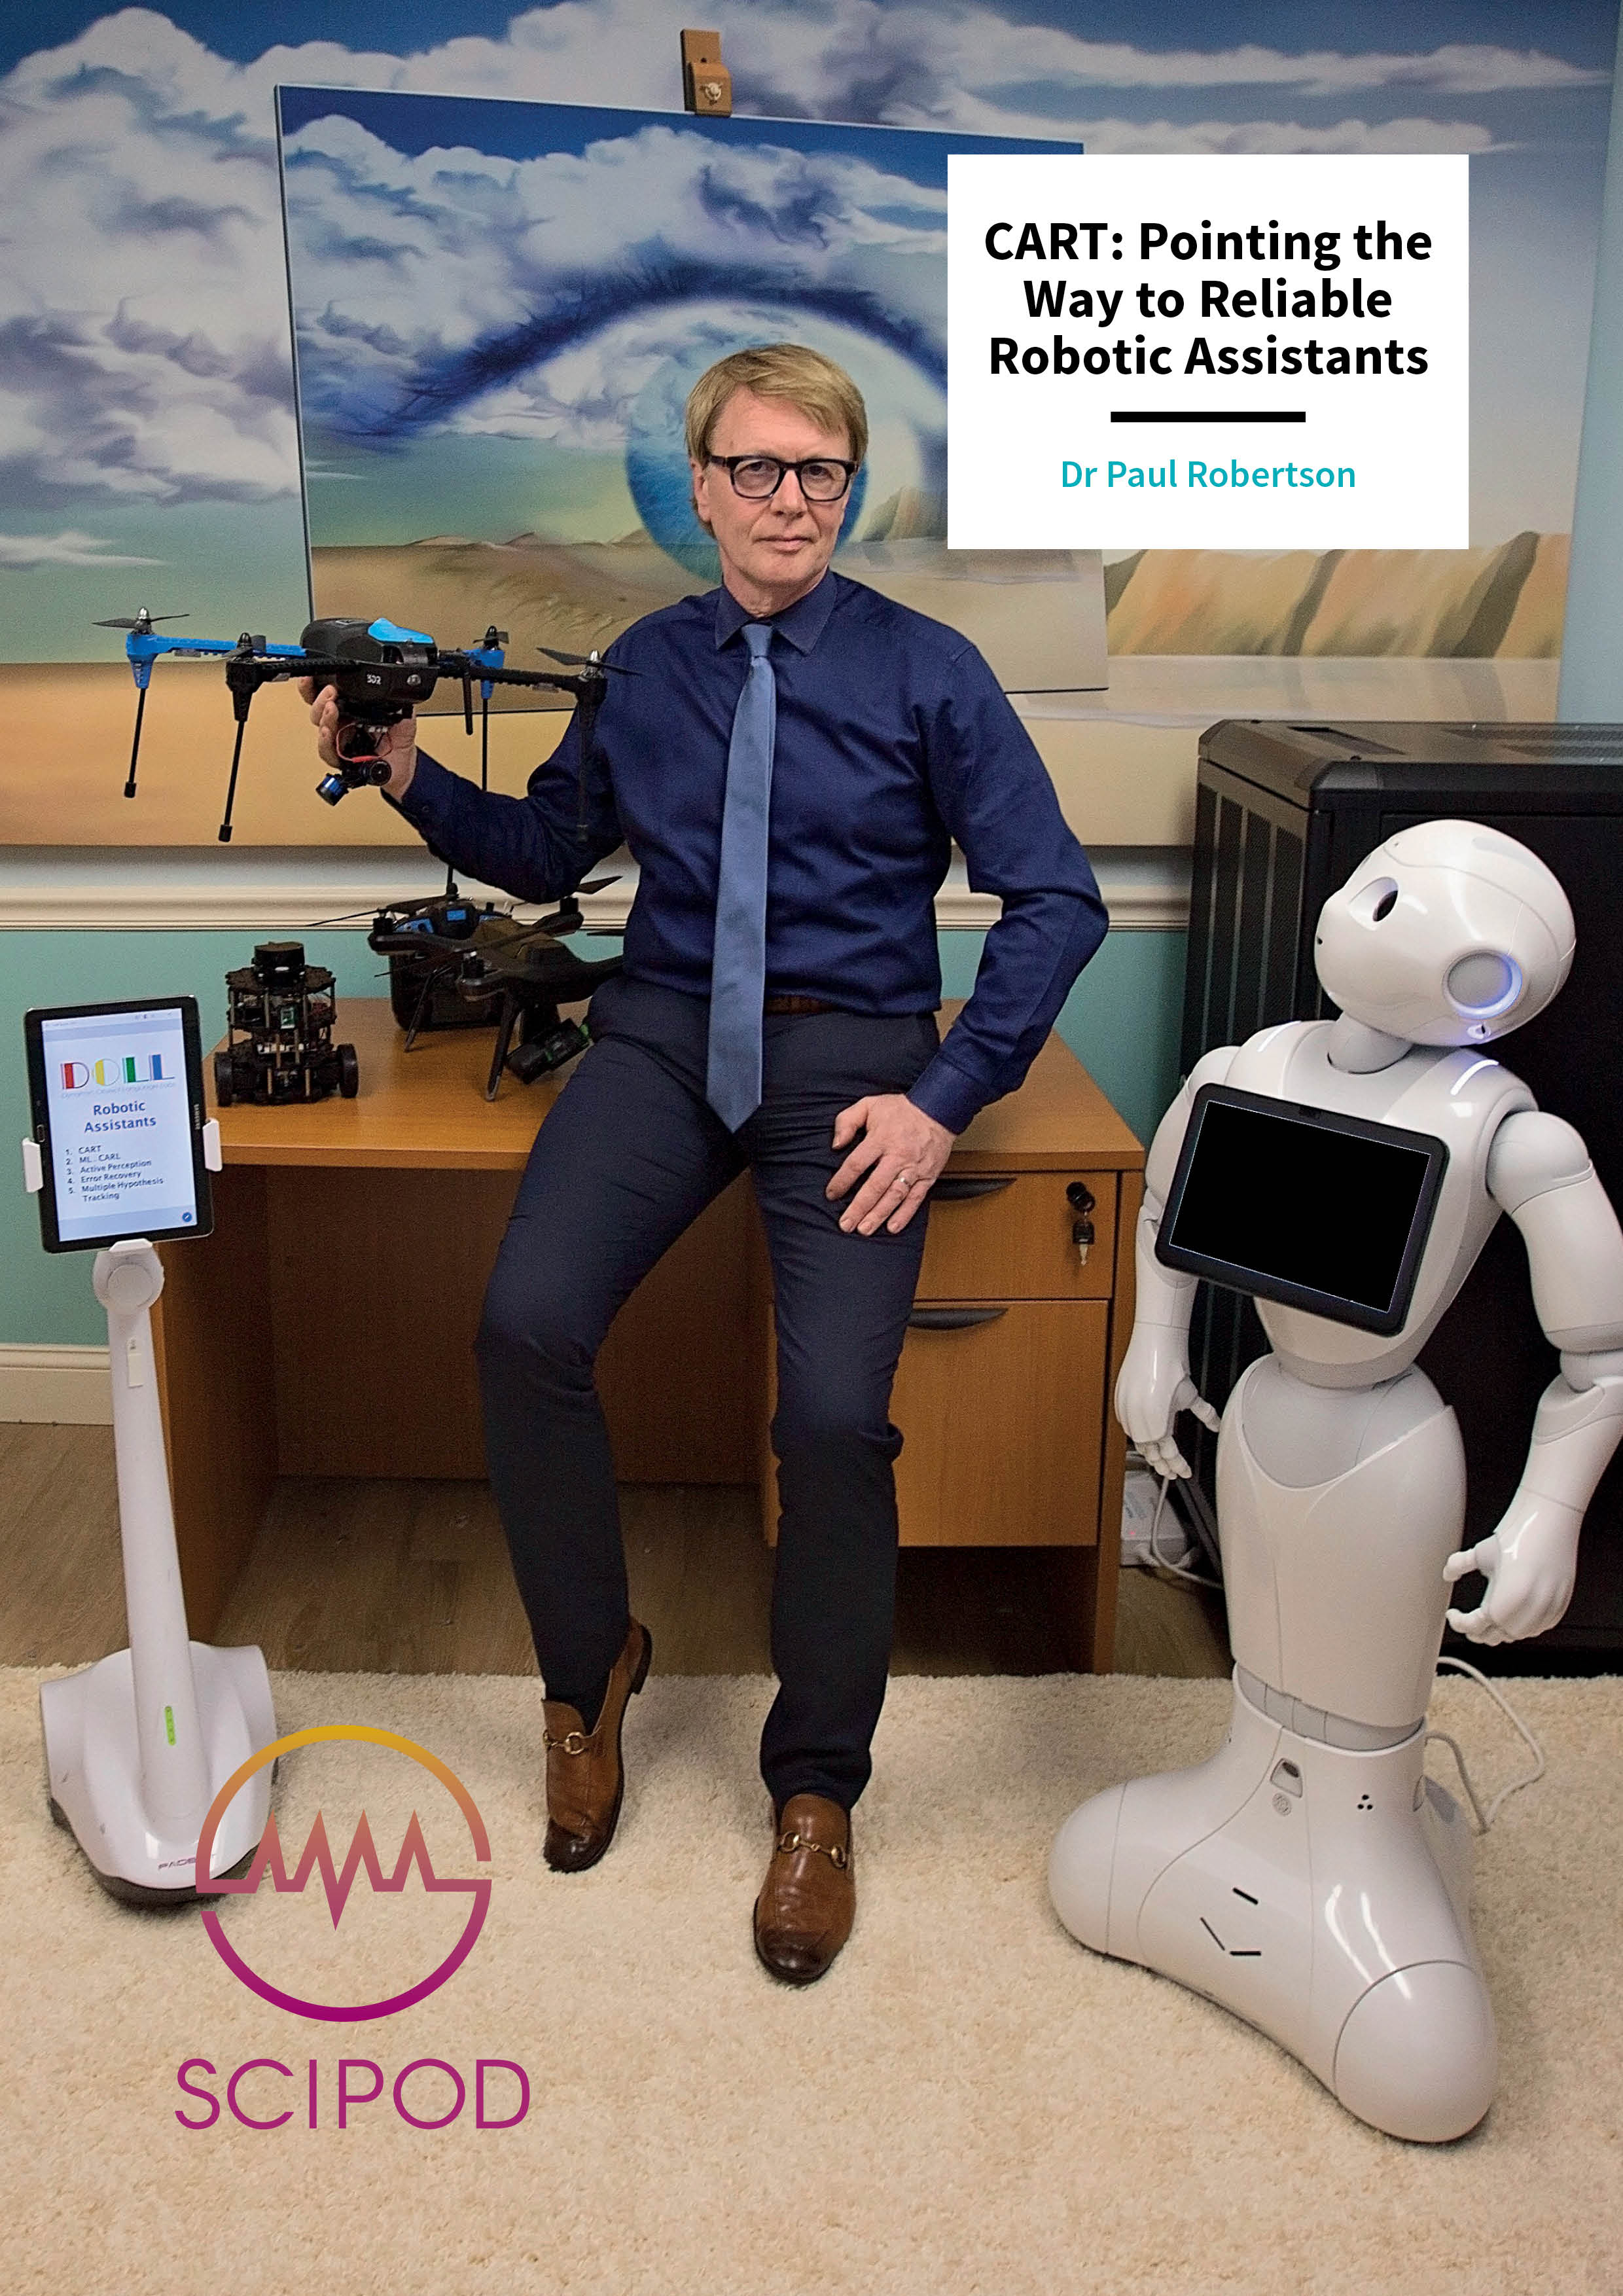 CART: Pointing the Way to Reliable Robotic Assistants- Dr Paul Robertson, Dynamic Object Language Labs Inc Lexington